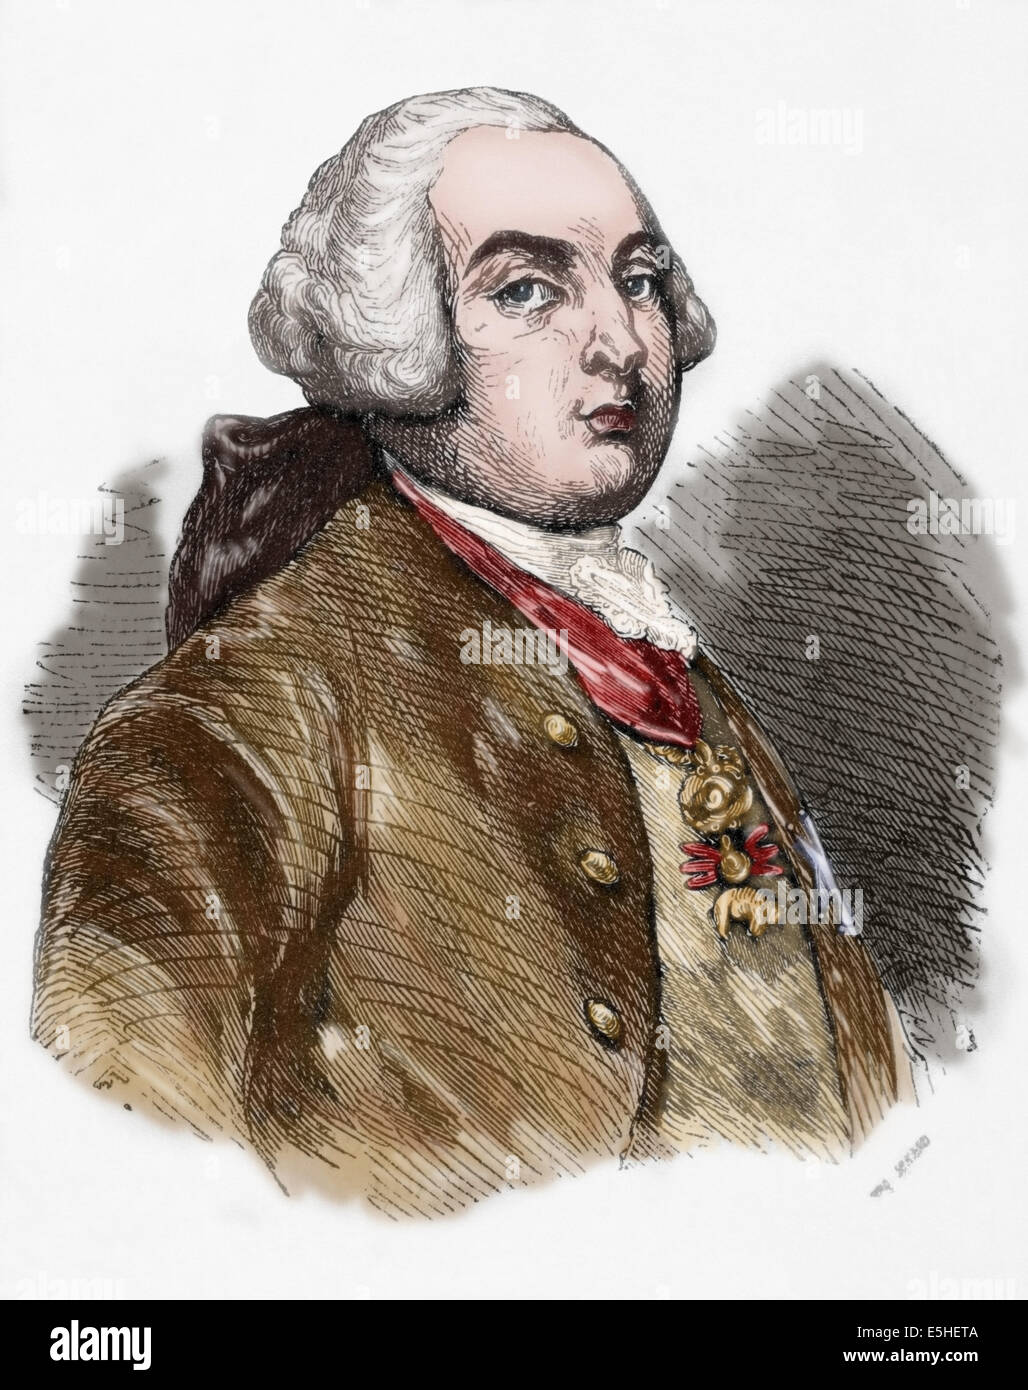 Louis XVI (1754-1793). King of France. Engraving. Colored. - Stock Image